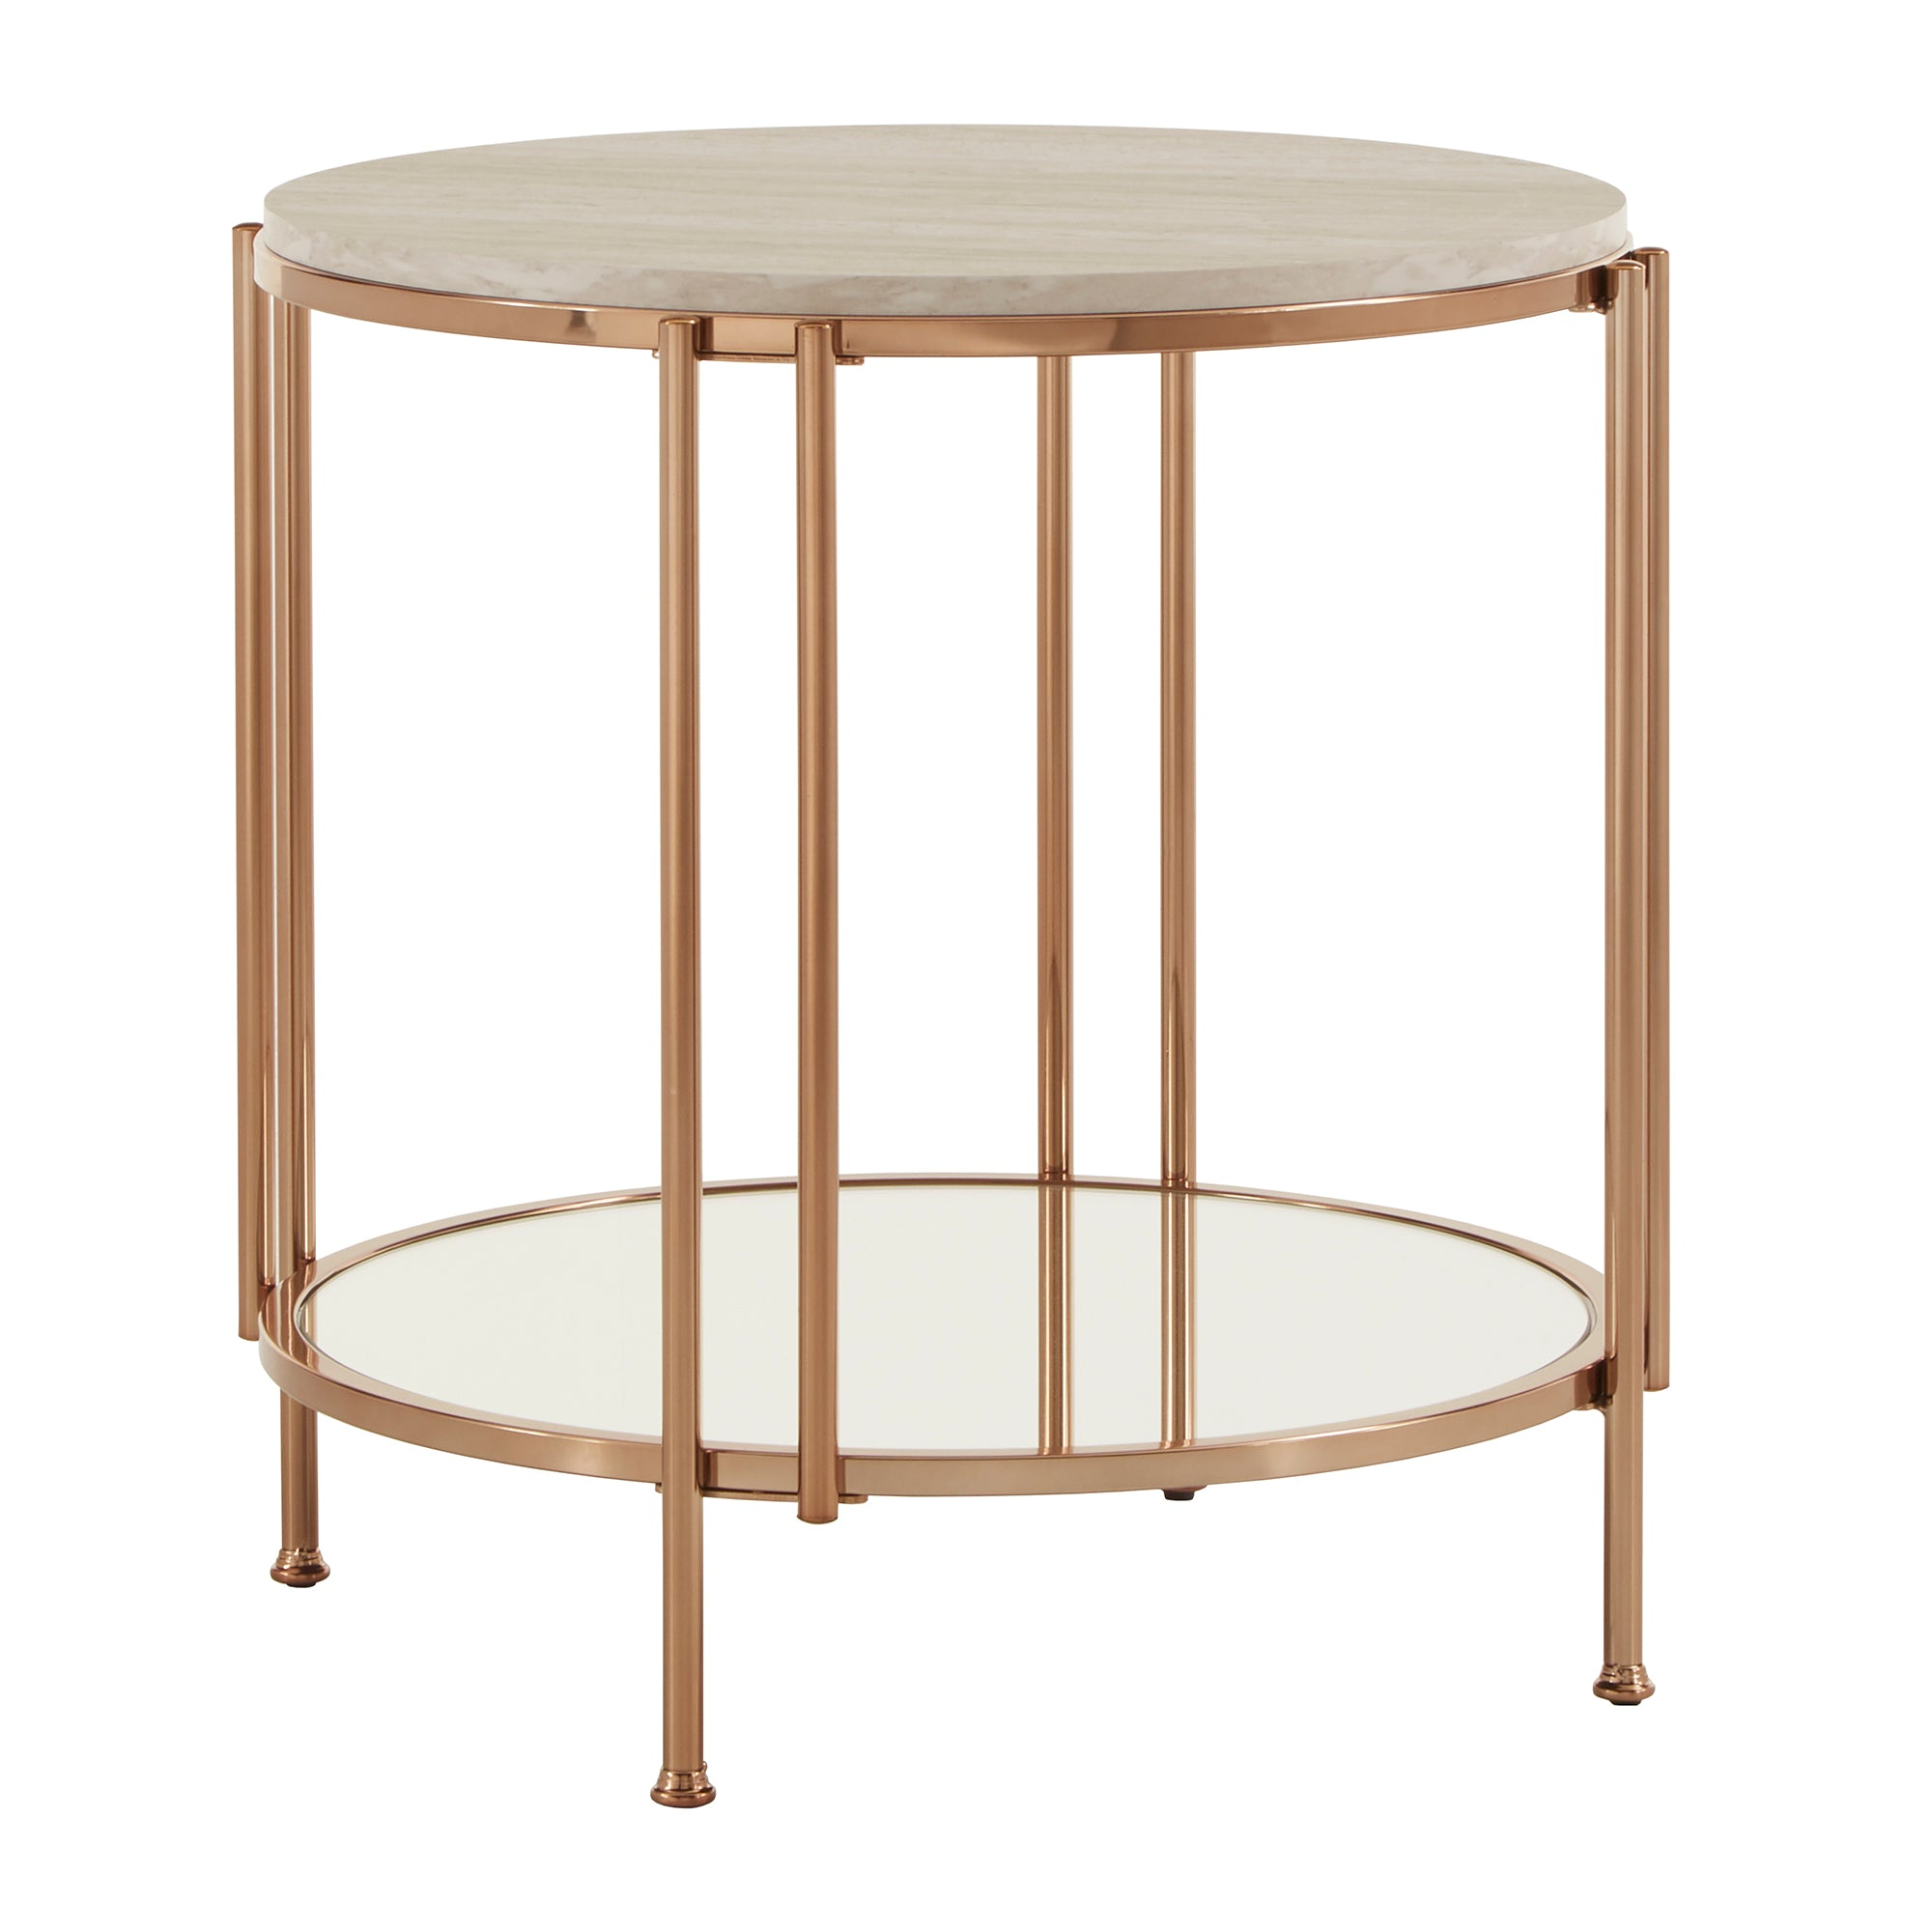 Champagne Gold Finish End Table - End Table